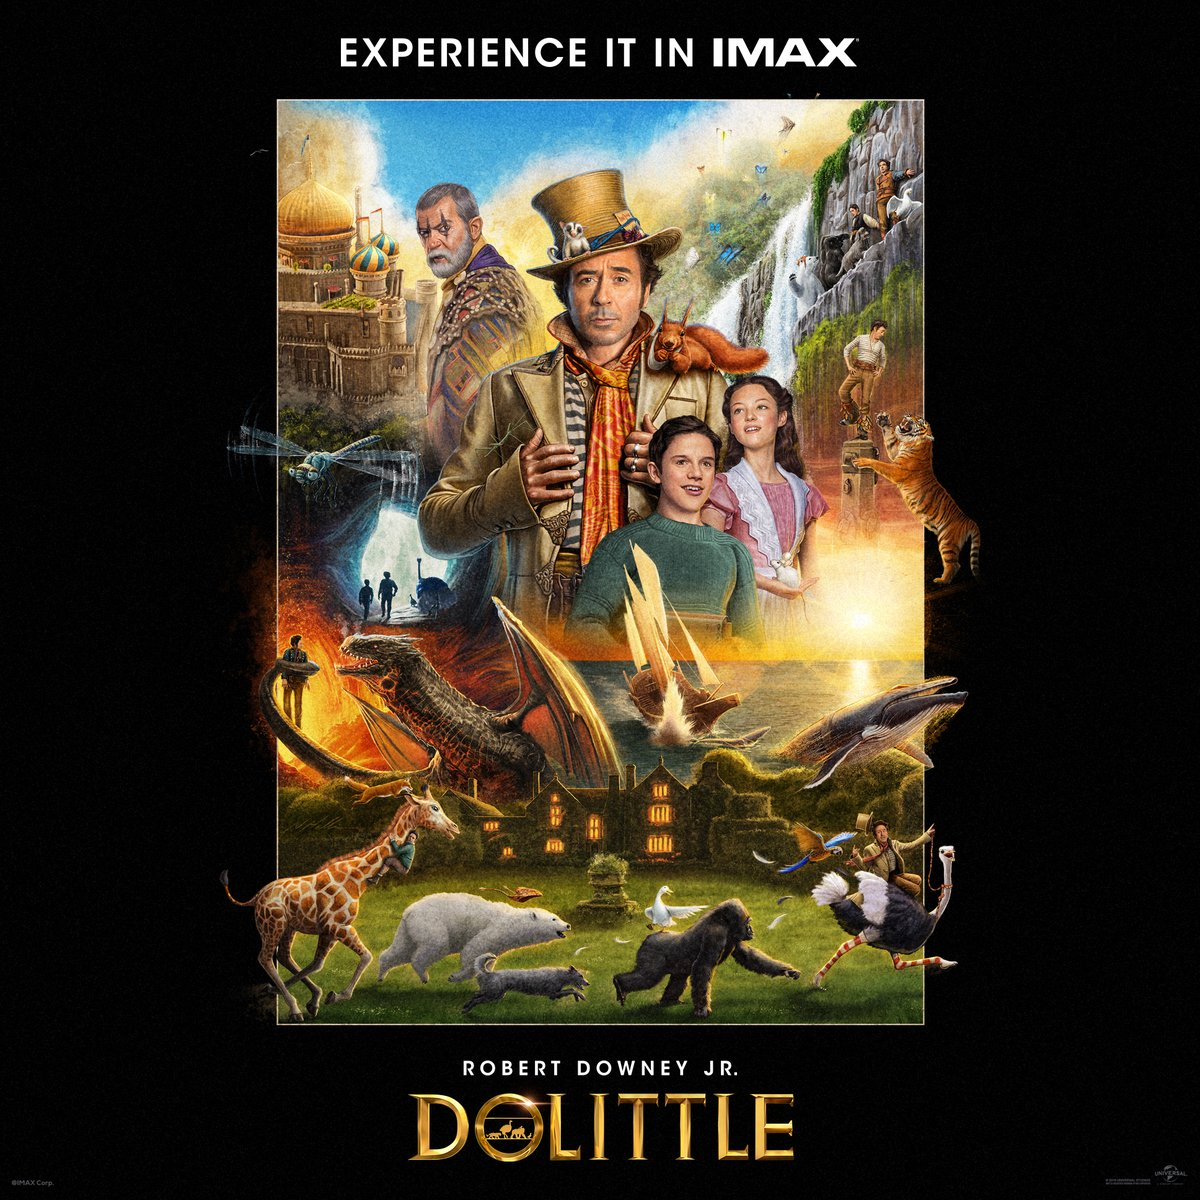 A journey this wondrous must be seen on the biggest screens. Get your family together to experience the fun of Dolittle in #IMAX today!  Get your tickets now: https://t.co/mZYpoc8FSI https://t.co/72NJtGLJCs